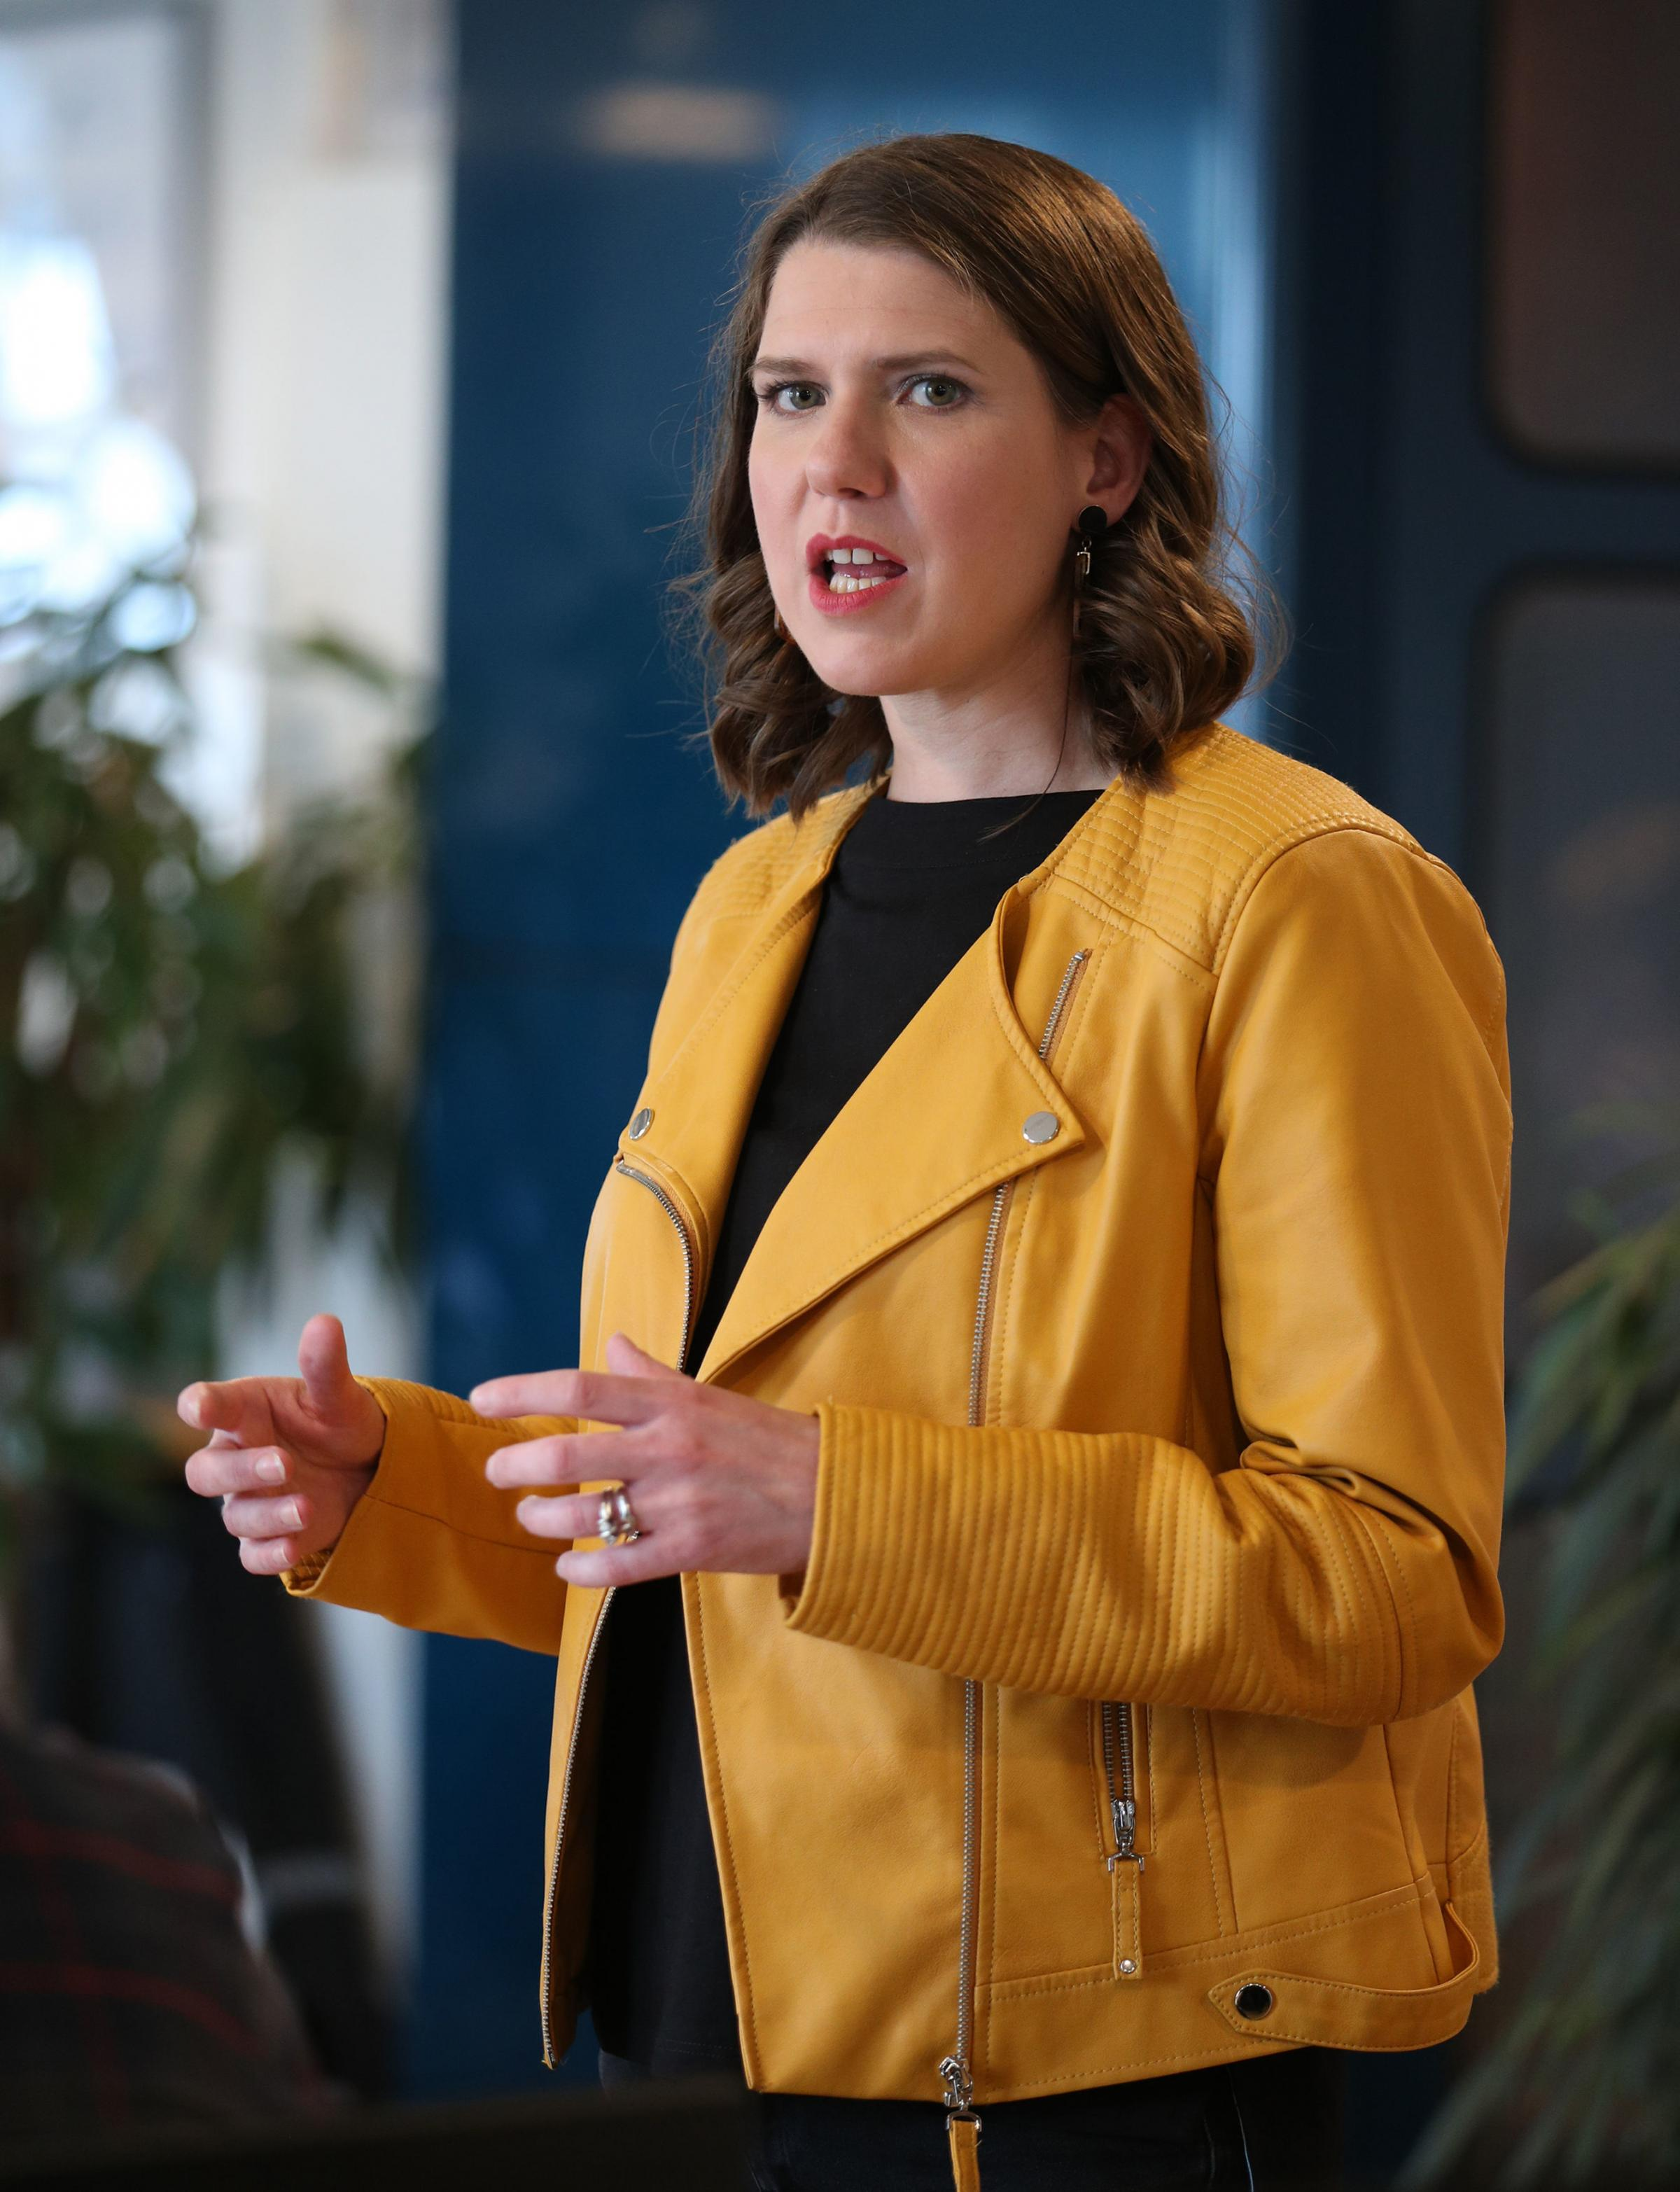 Jo Swinson widely tipped to be named as new Lib Dem leader - but Ed Davey believes result will be 'very close'